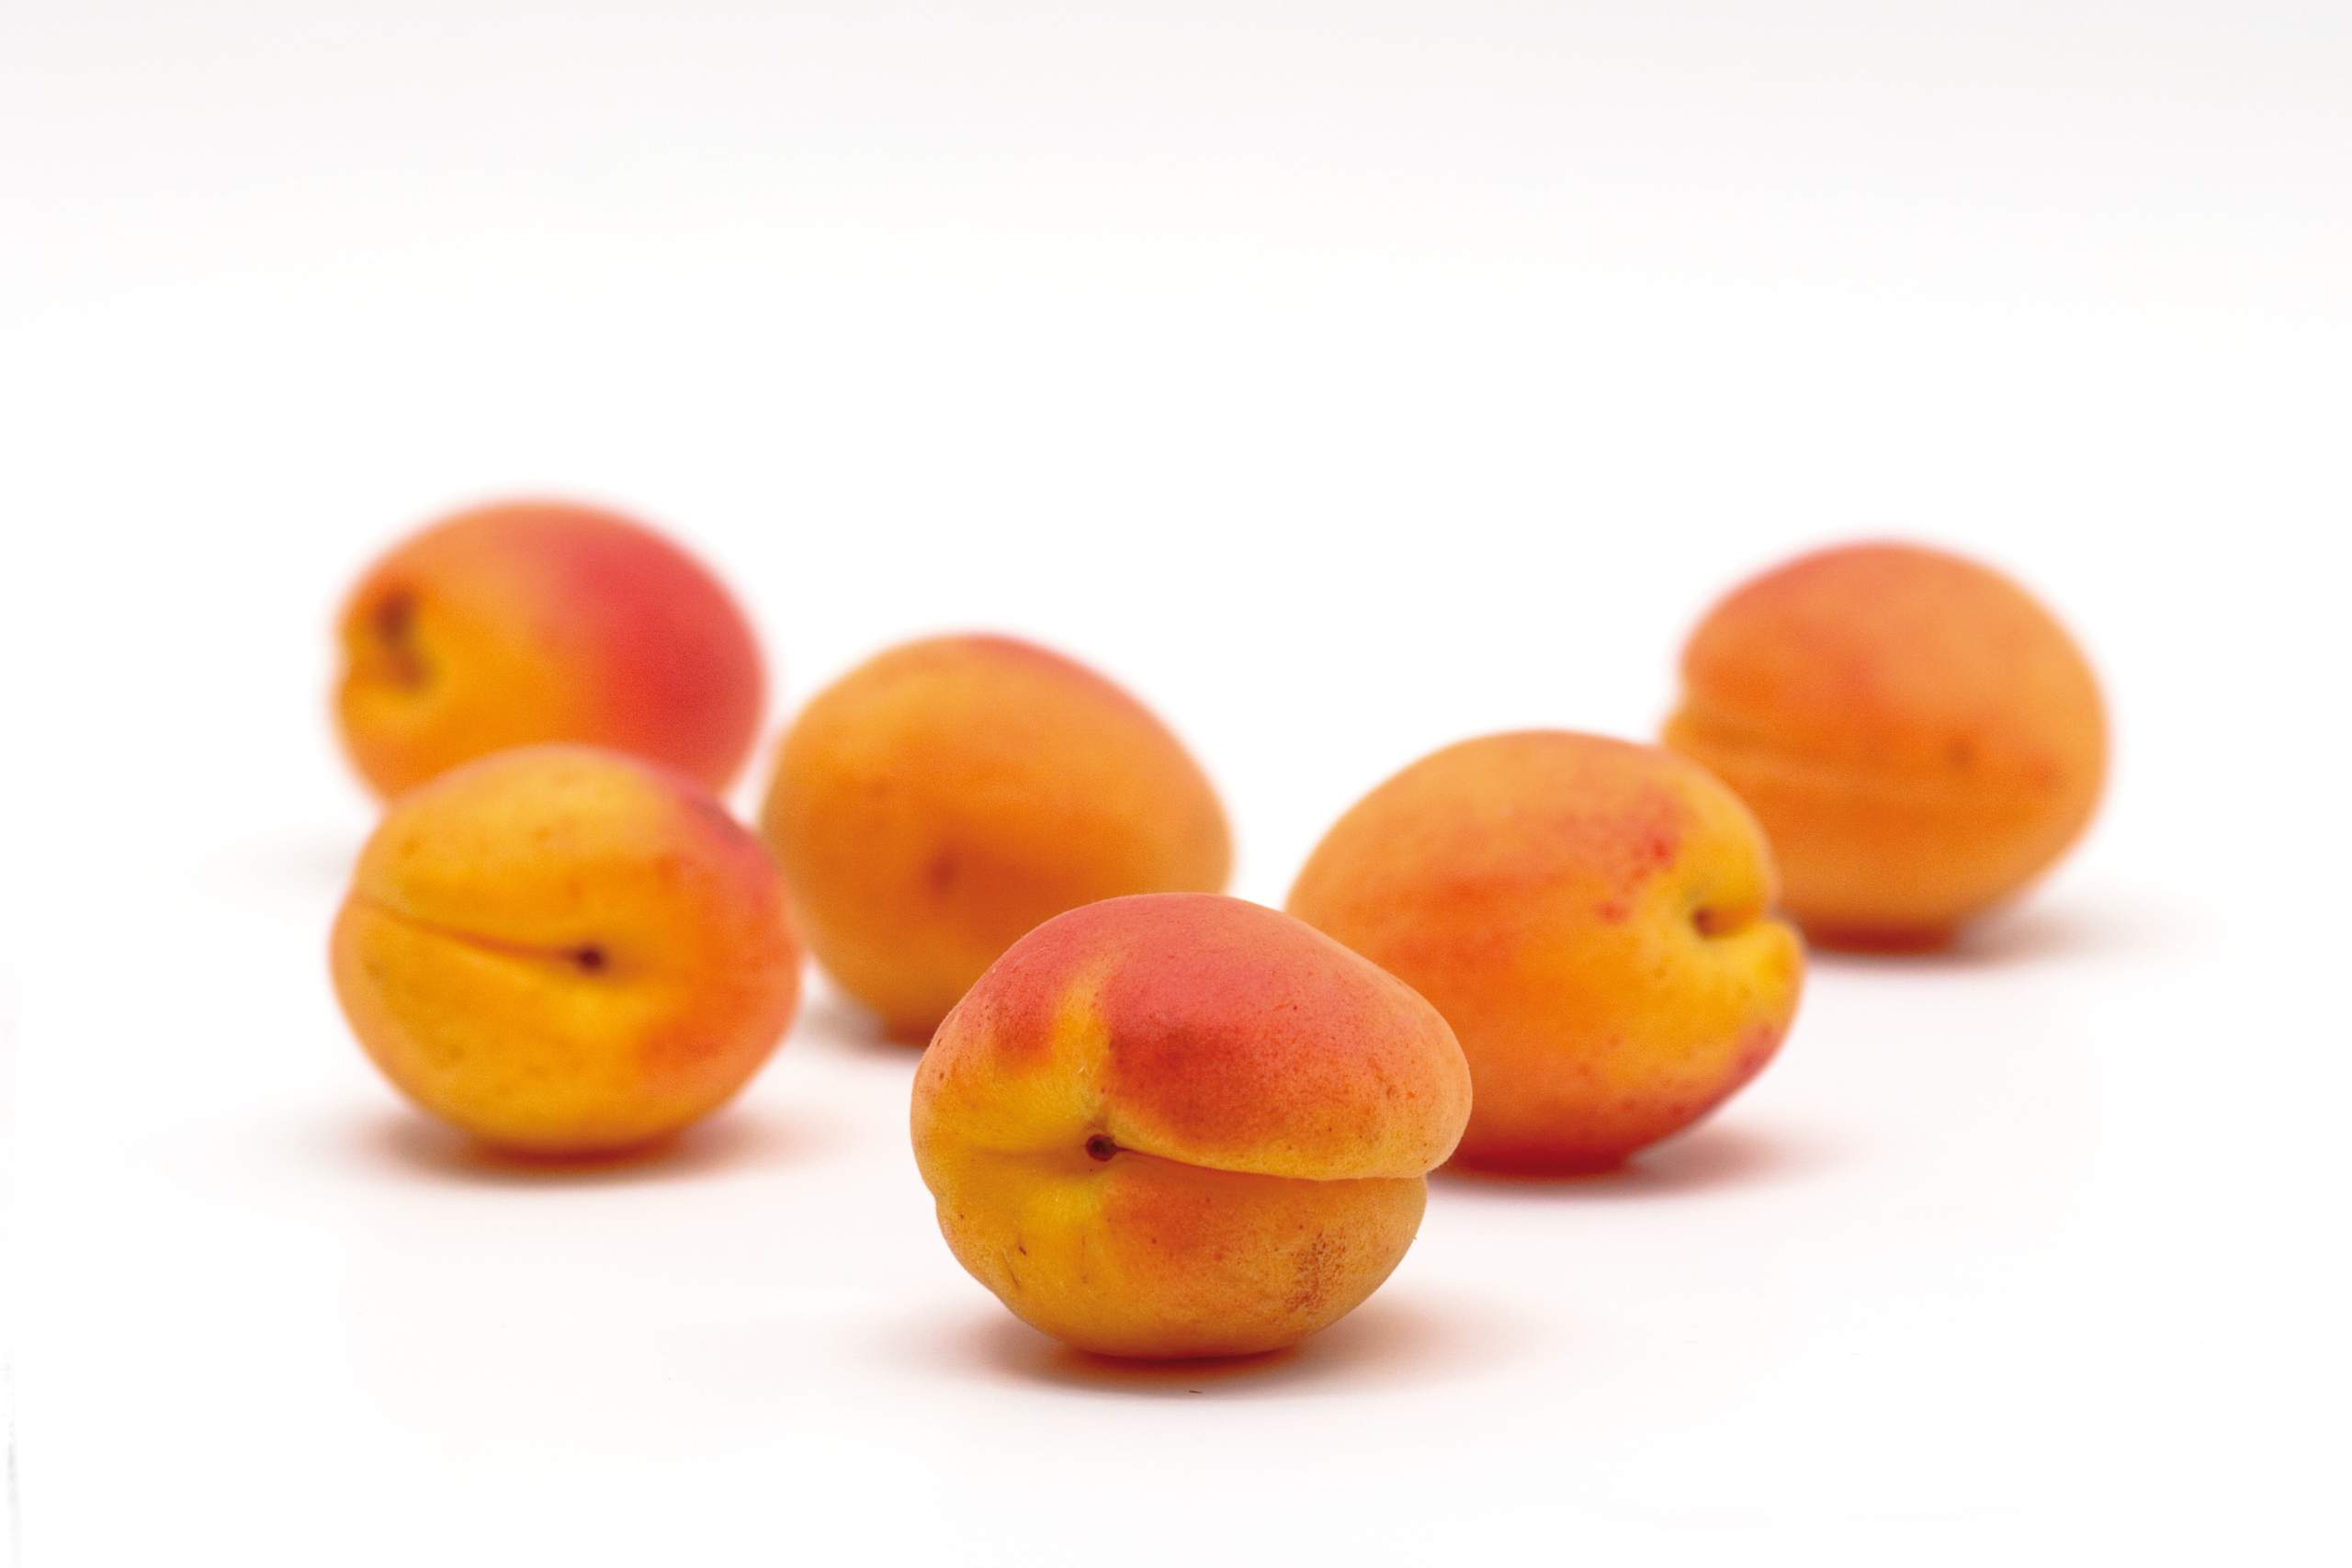 Apricot kernels are surrounded by tasty andsweet apricots